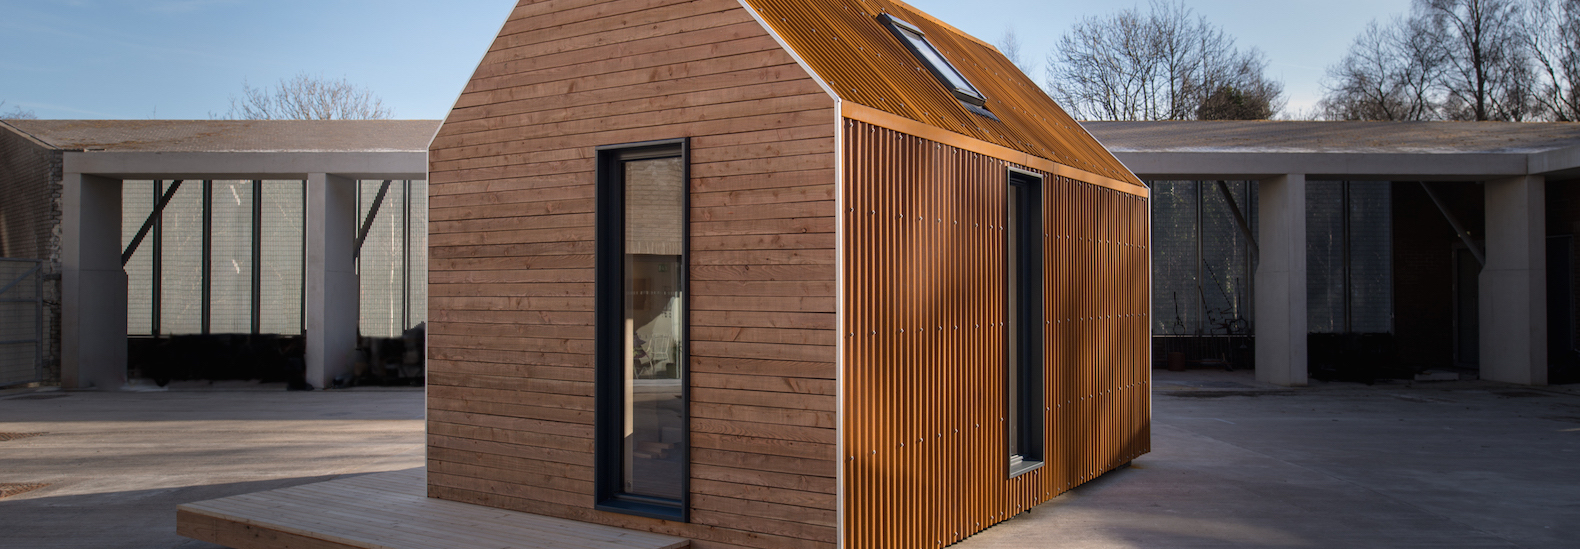 Charmant This Prefab Cabin Is Designed To Take You Off Grid In The Scottish Highlands